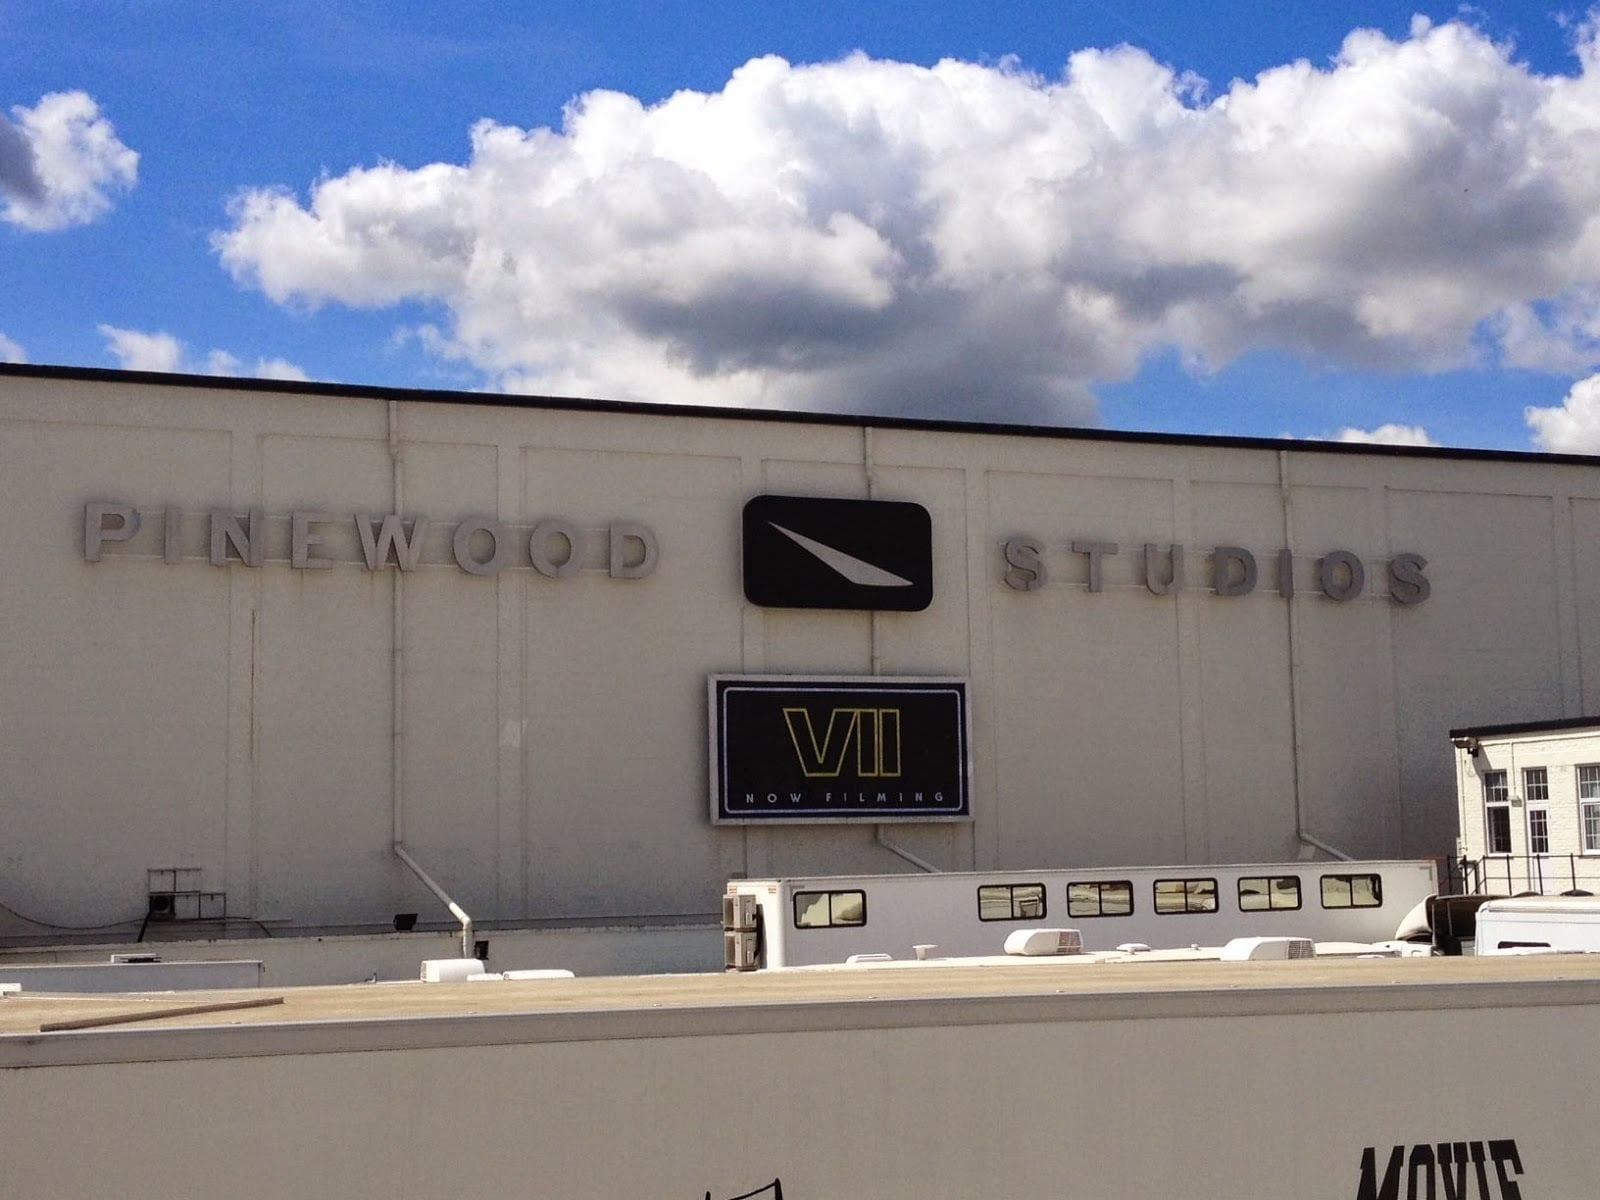 The front of Pinewood Studios during the production of Star Wars: The Force Awakens.